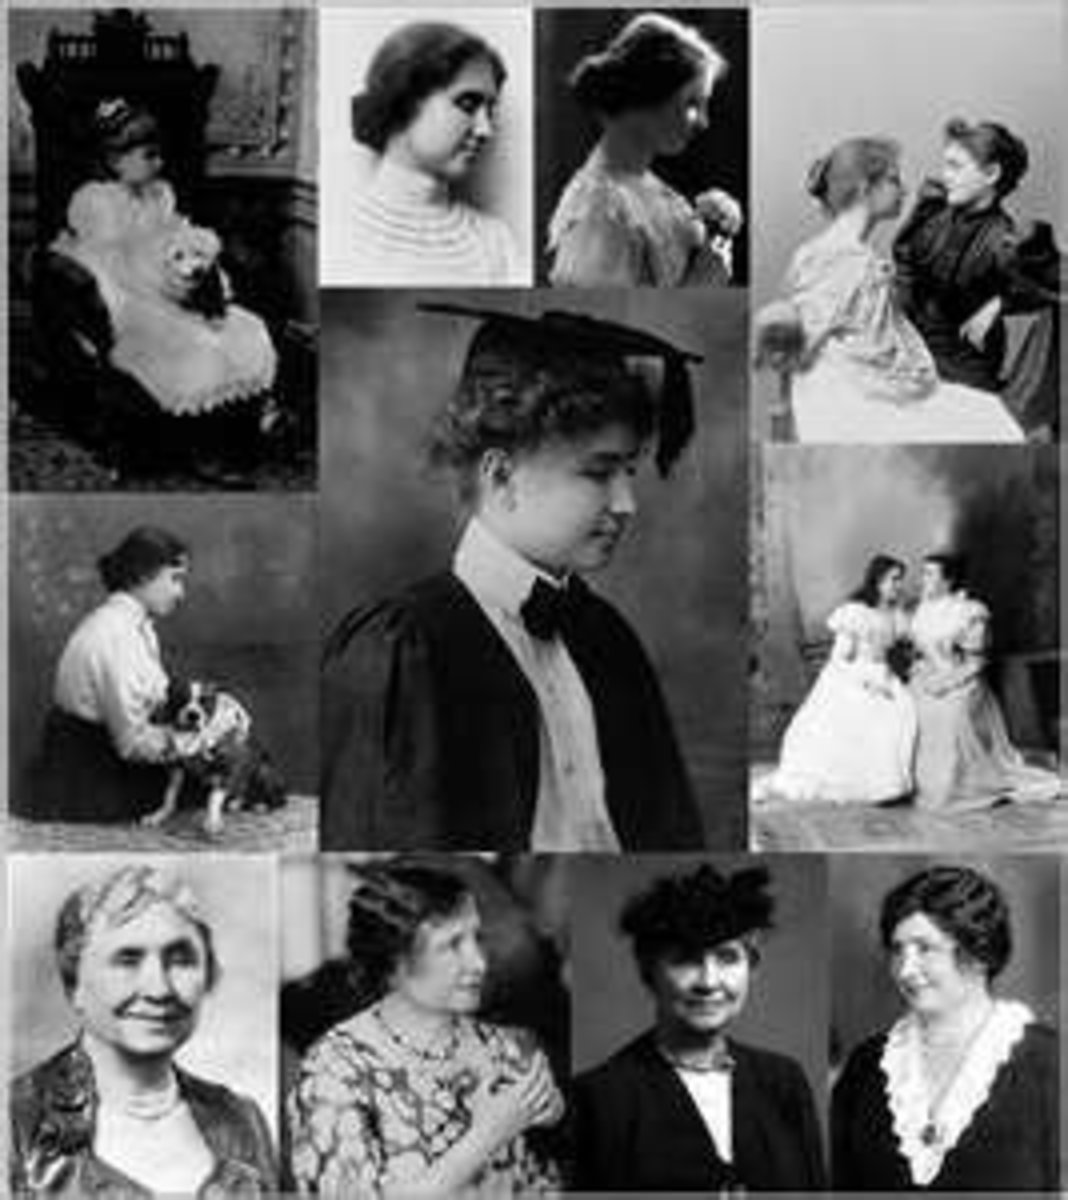 Image credit of Helen Keller: http://positivetosuccess.com/positive-stories/helen-keller-story-jun-27-1880-jun-1-1968/